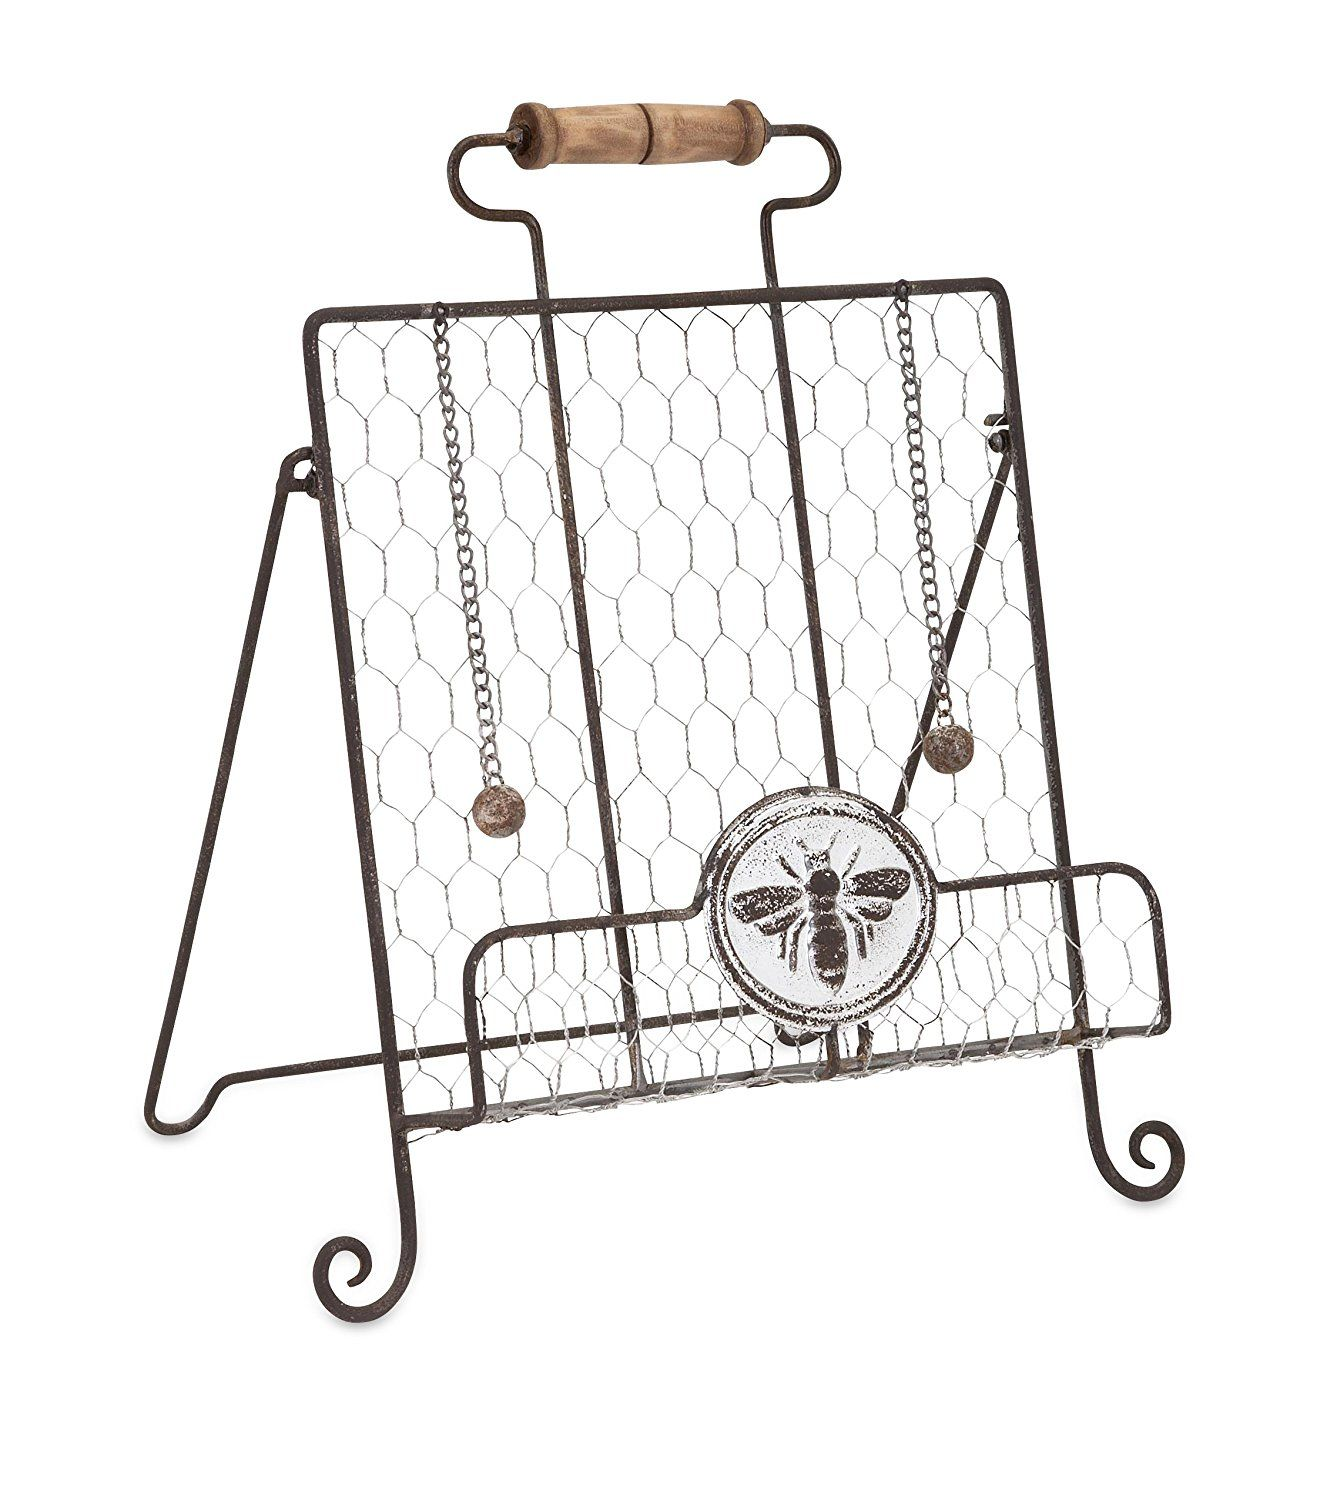 Amazon.com: Trisha Yearwood Home Collection 10451 Honey Bee Recipe Book Easel: Home & Kitchen